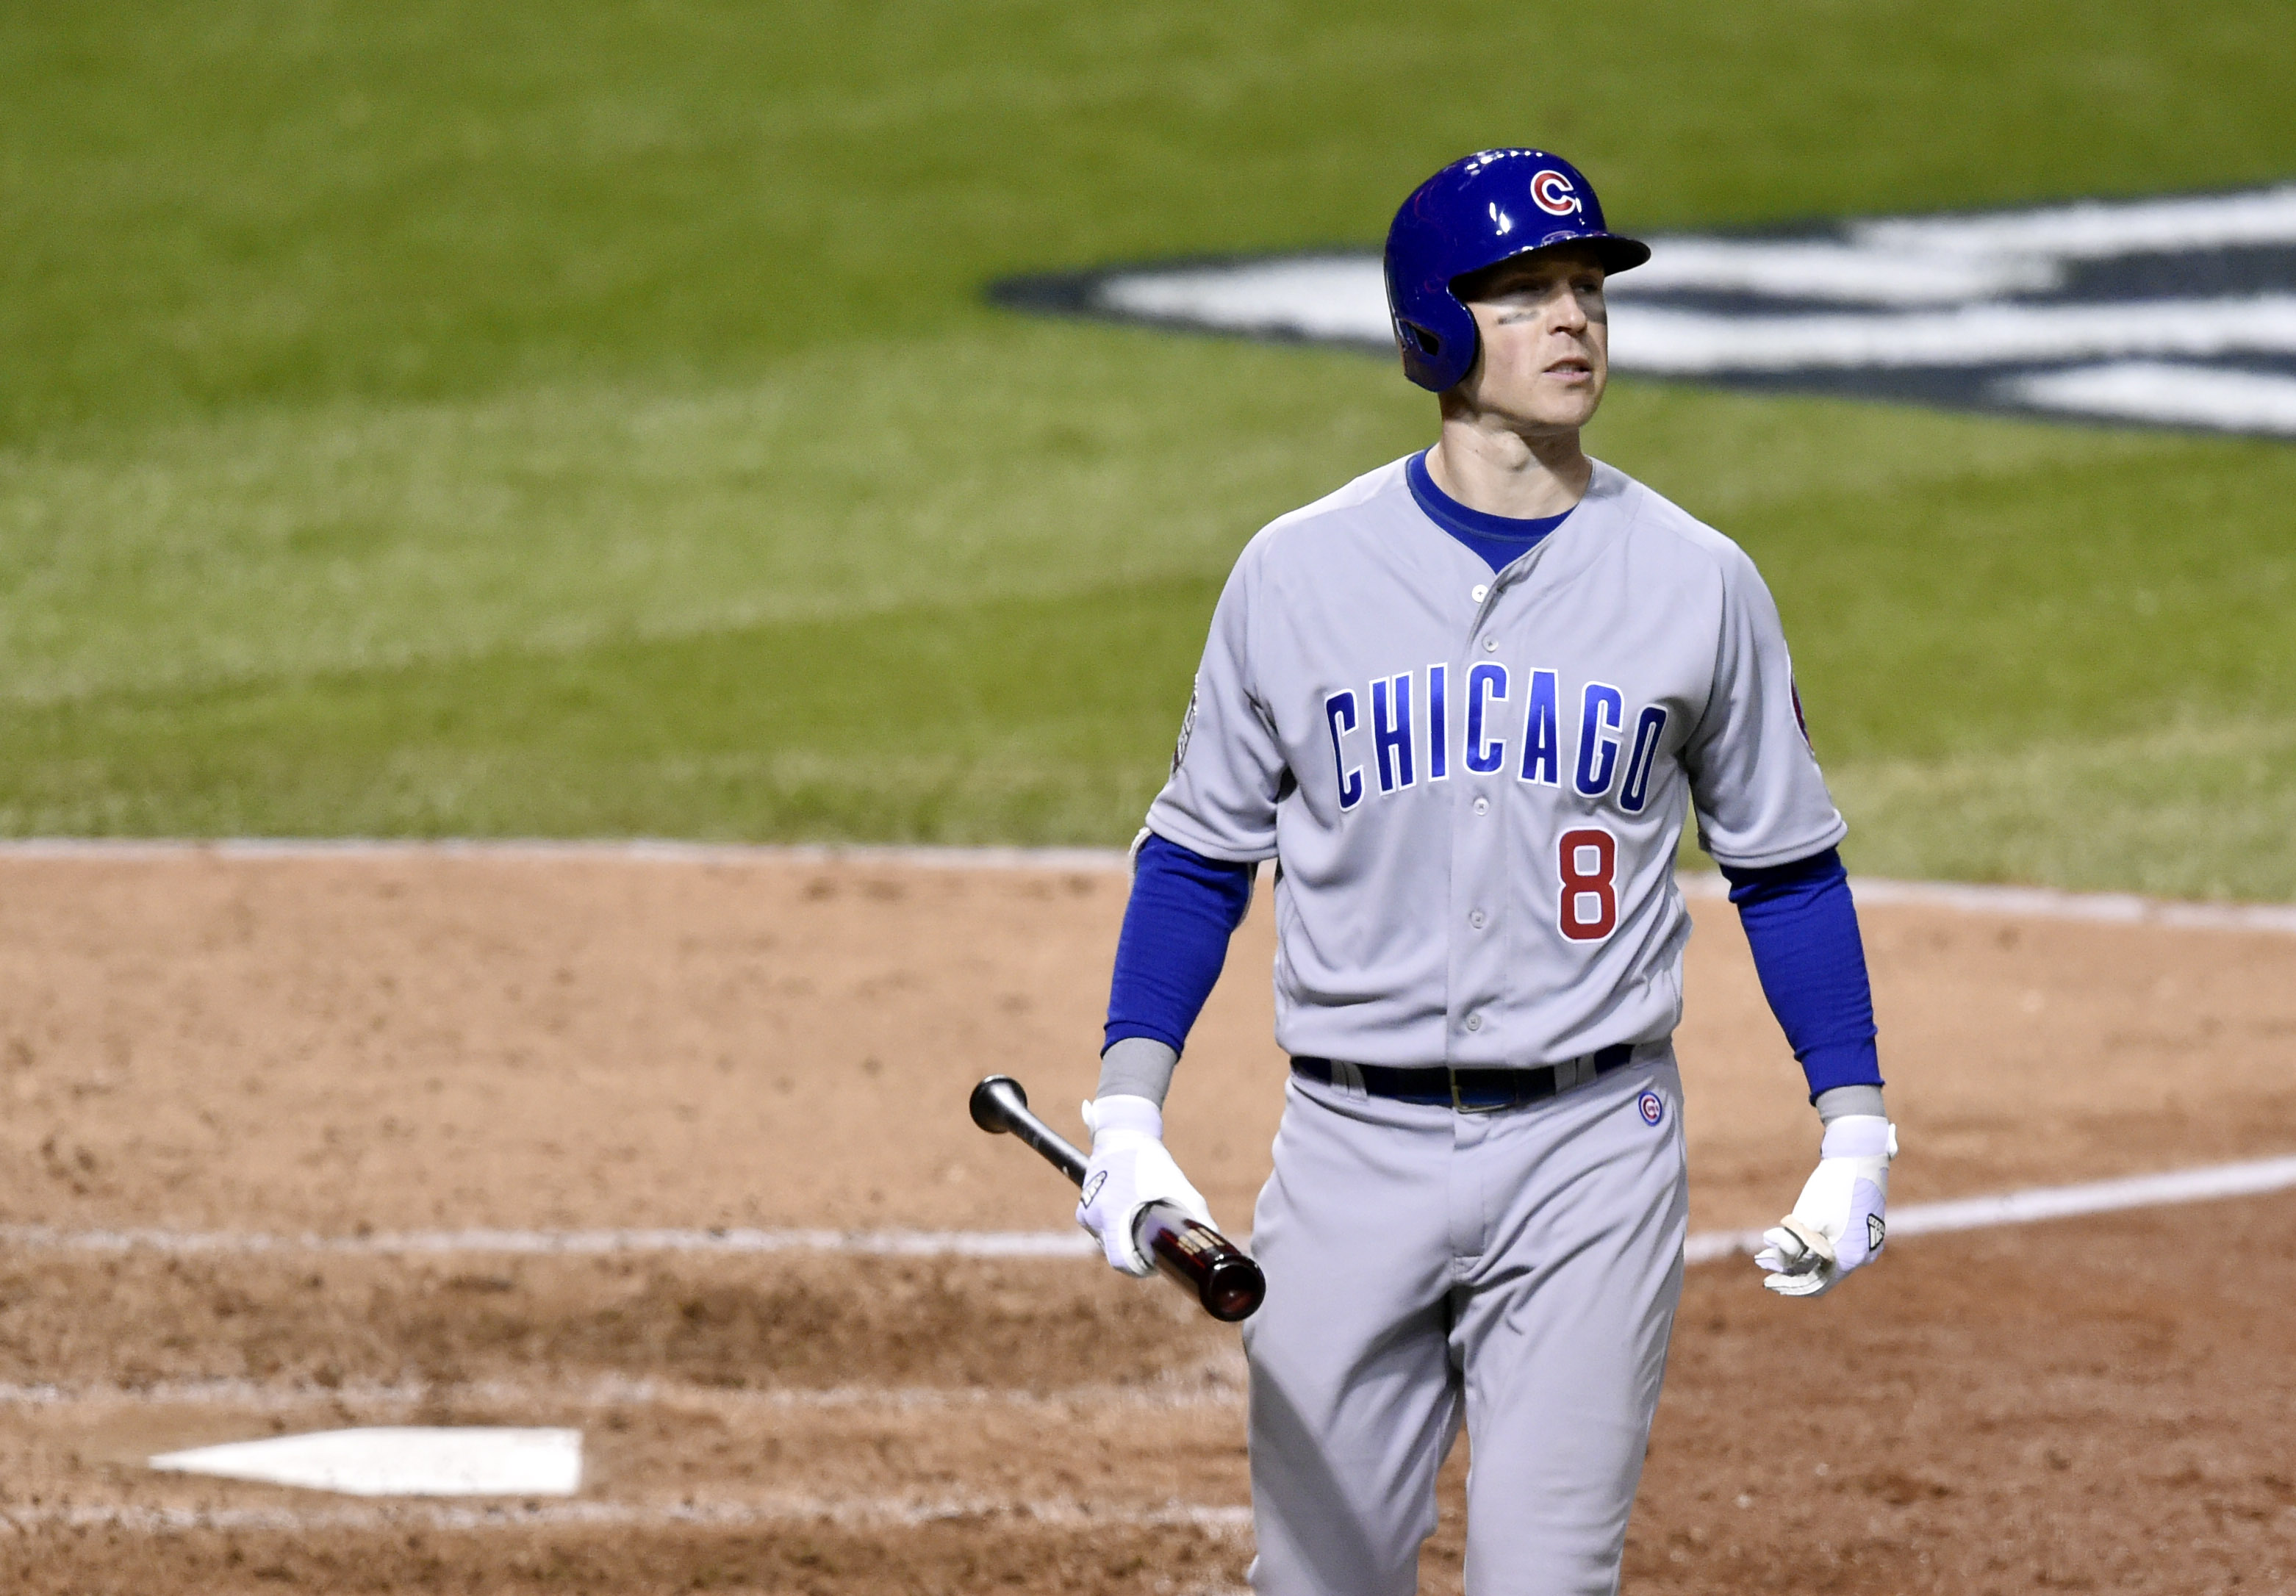 9632816-mlb-world-series-chicago-cubs-at-cleveland-indians-1